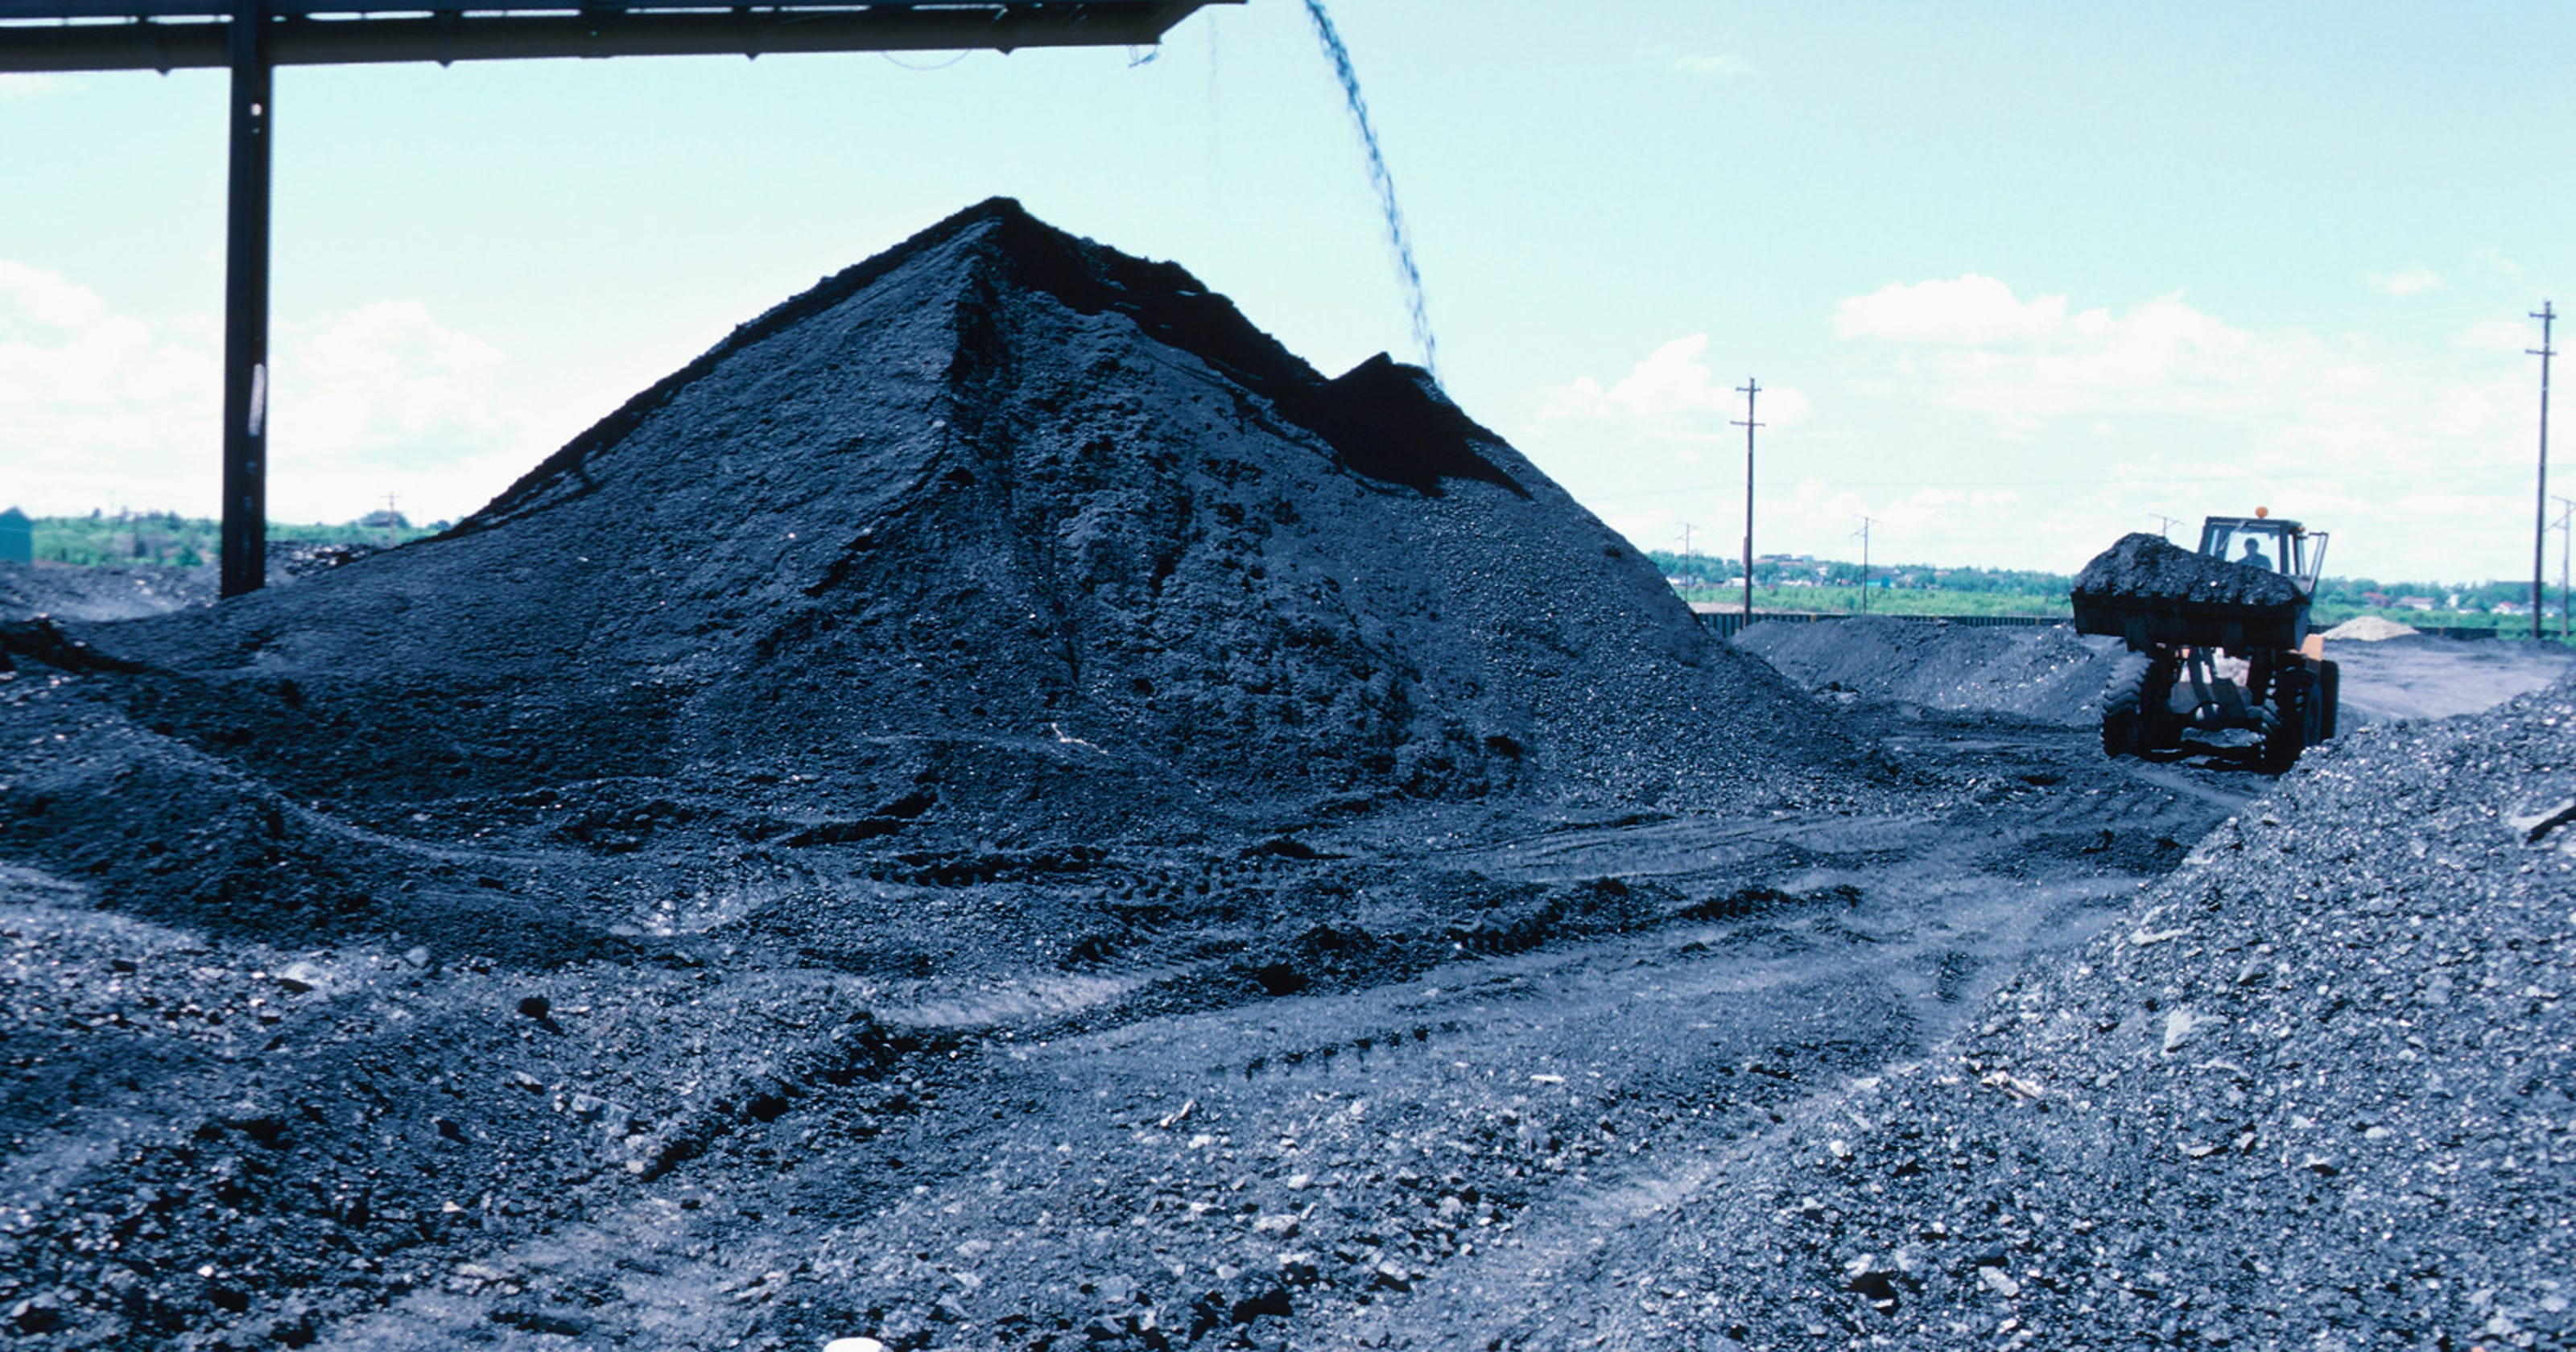 CEO of West Virginia's bankrupt Blackjewel: Coal company will recover